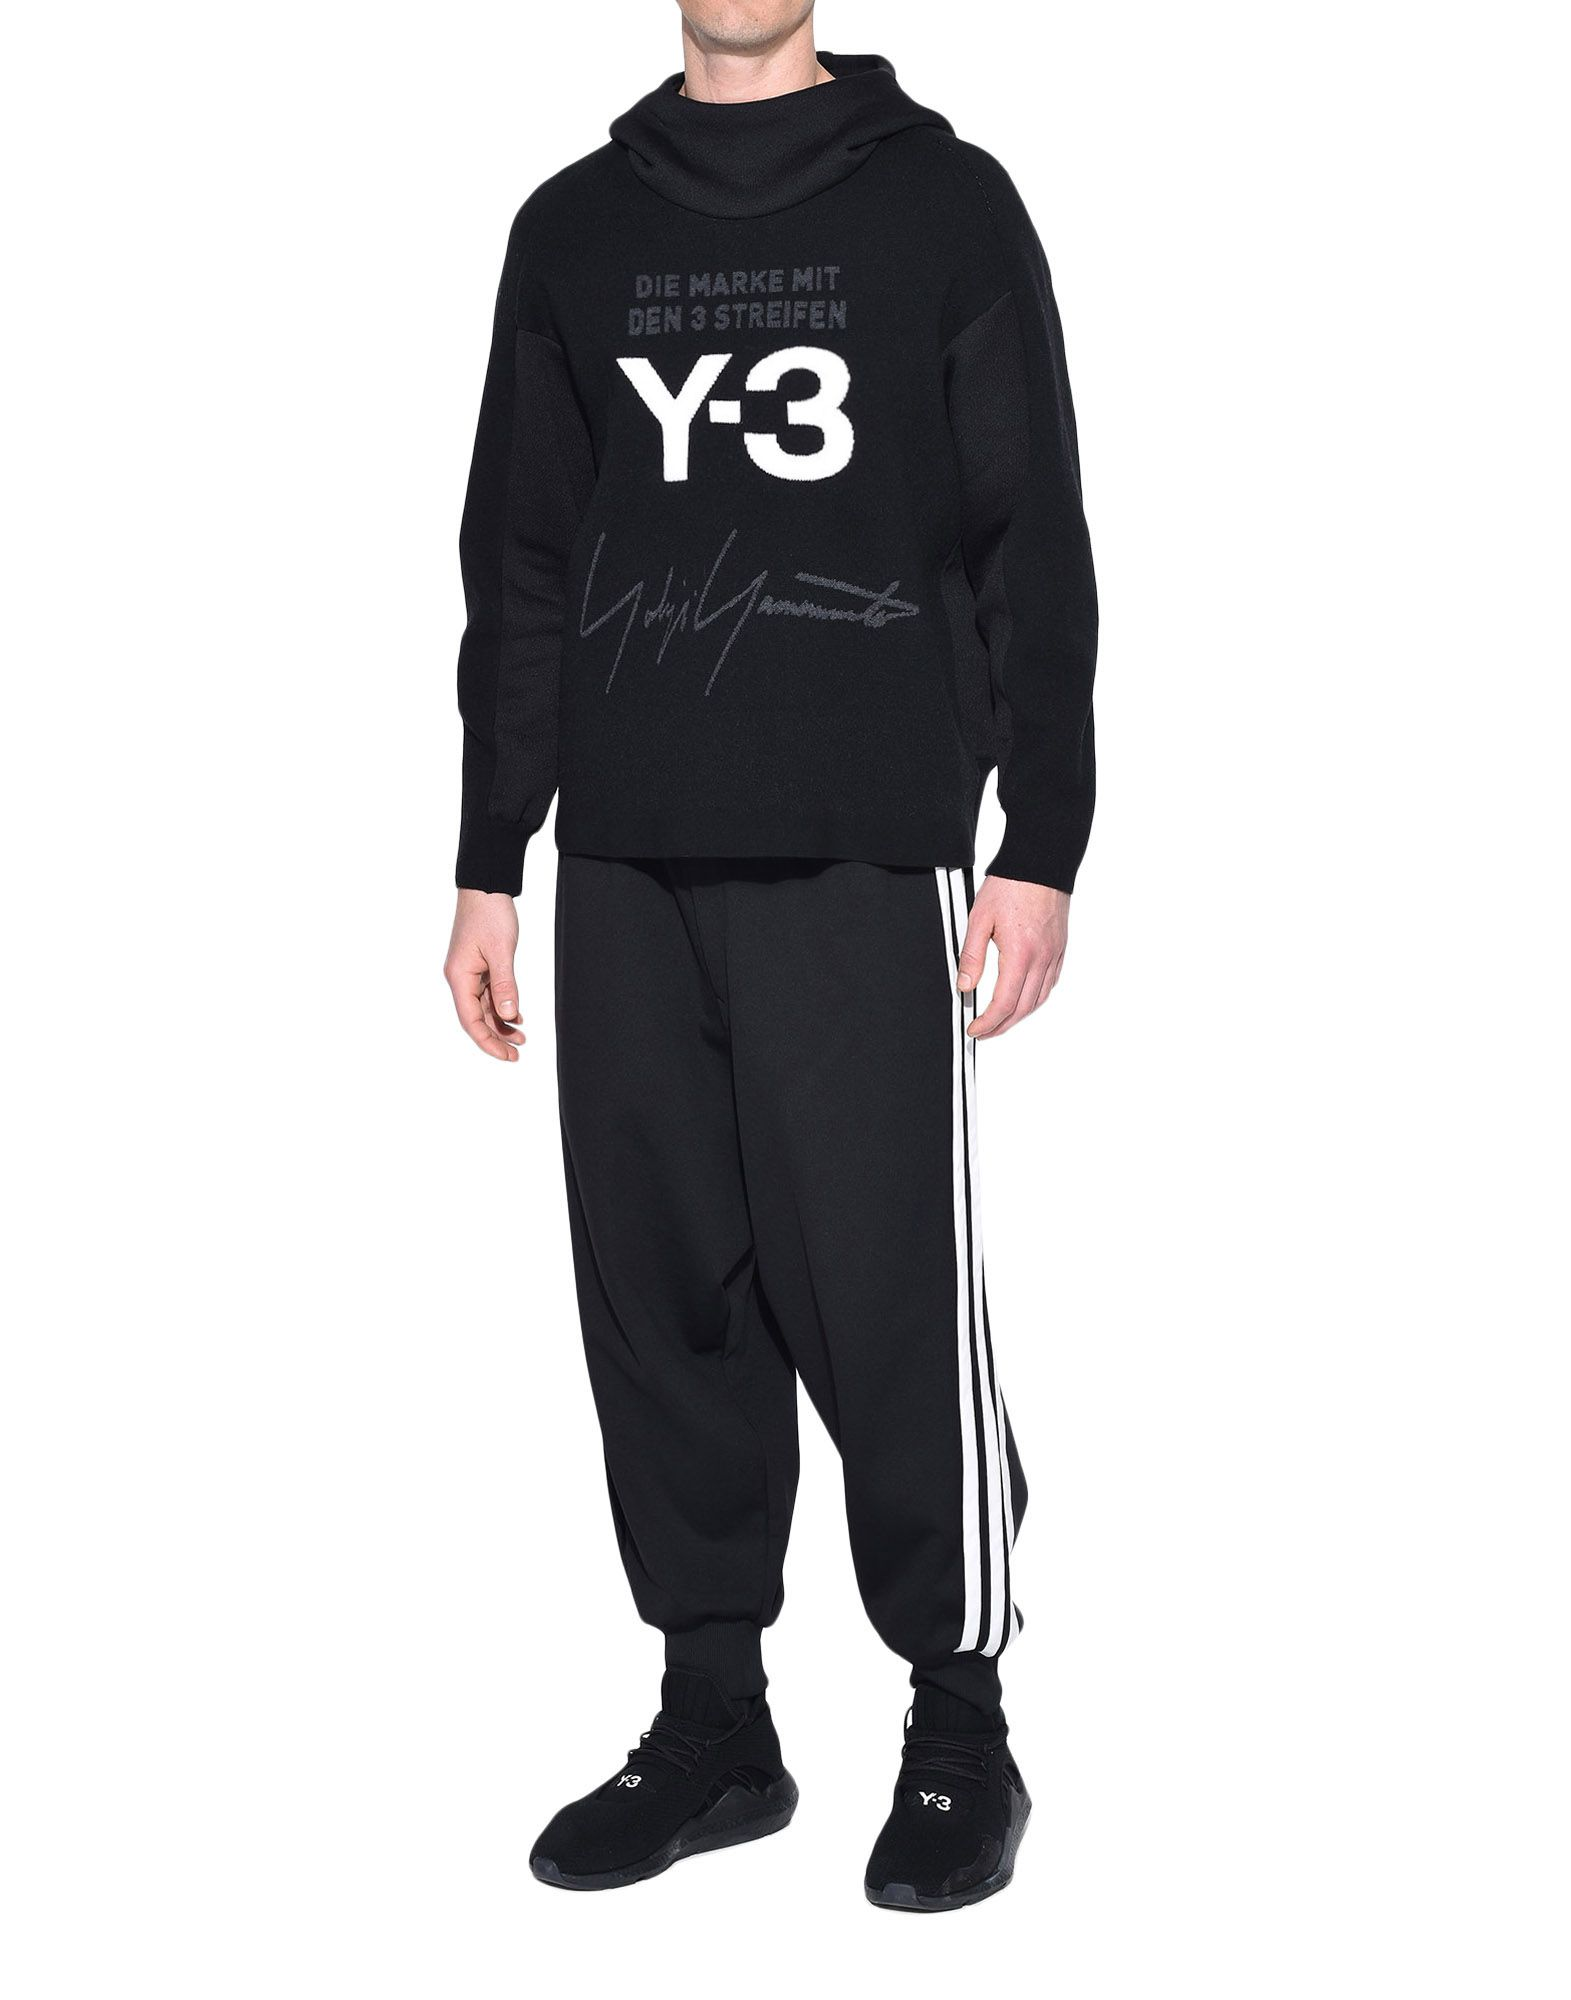 Y-3 Y-3 Knitted Stacked Logo Hoodie フード付きトレーナー メンズ a